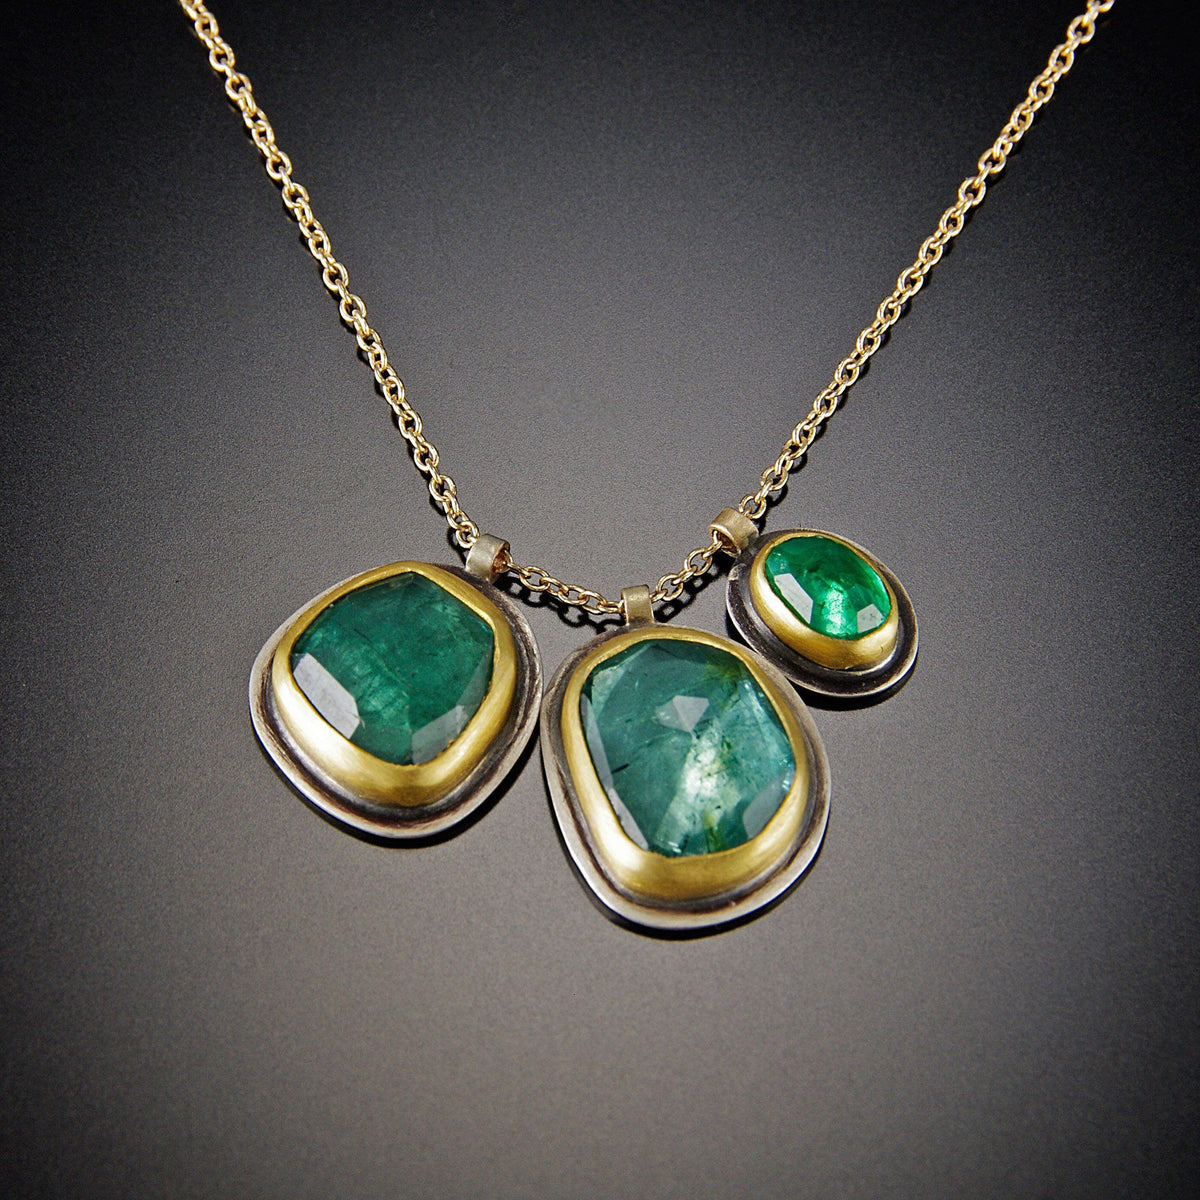 197f9795e843d Two Tourmaline and Emerald Necklace